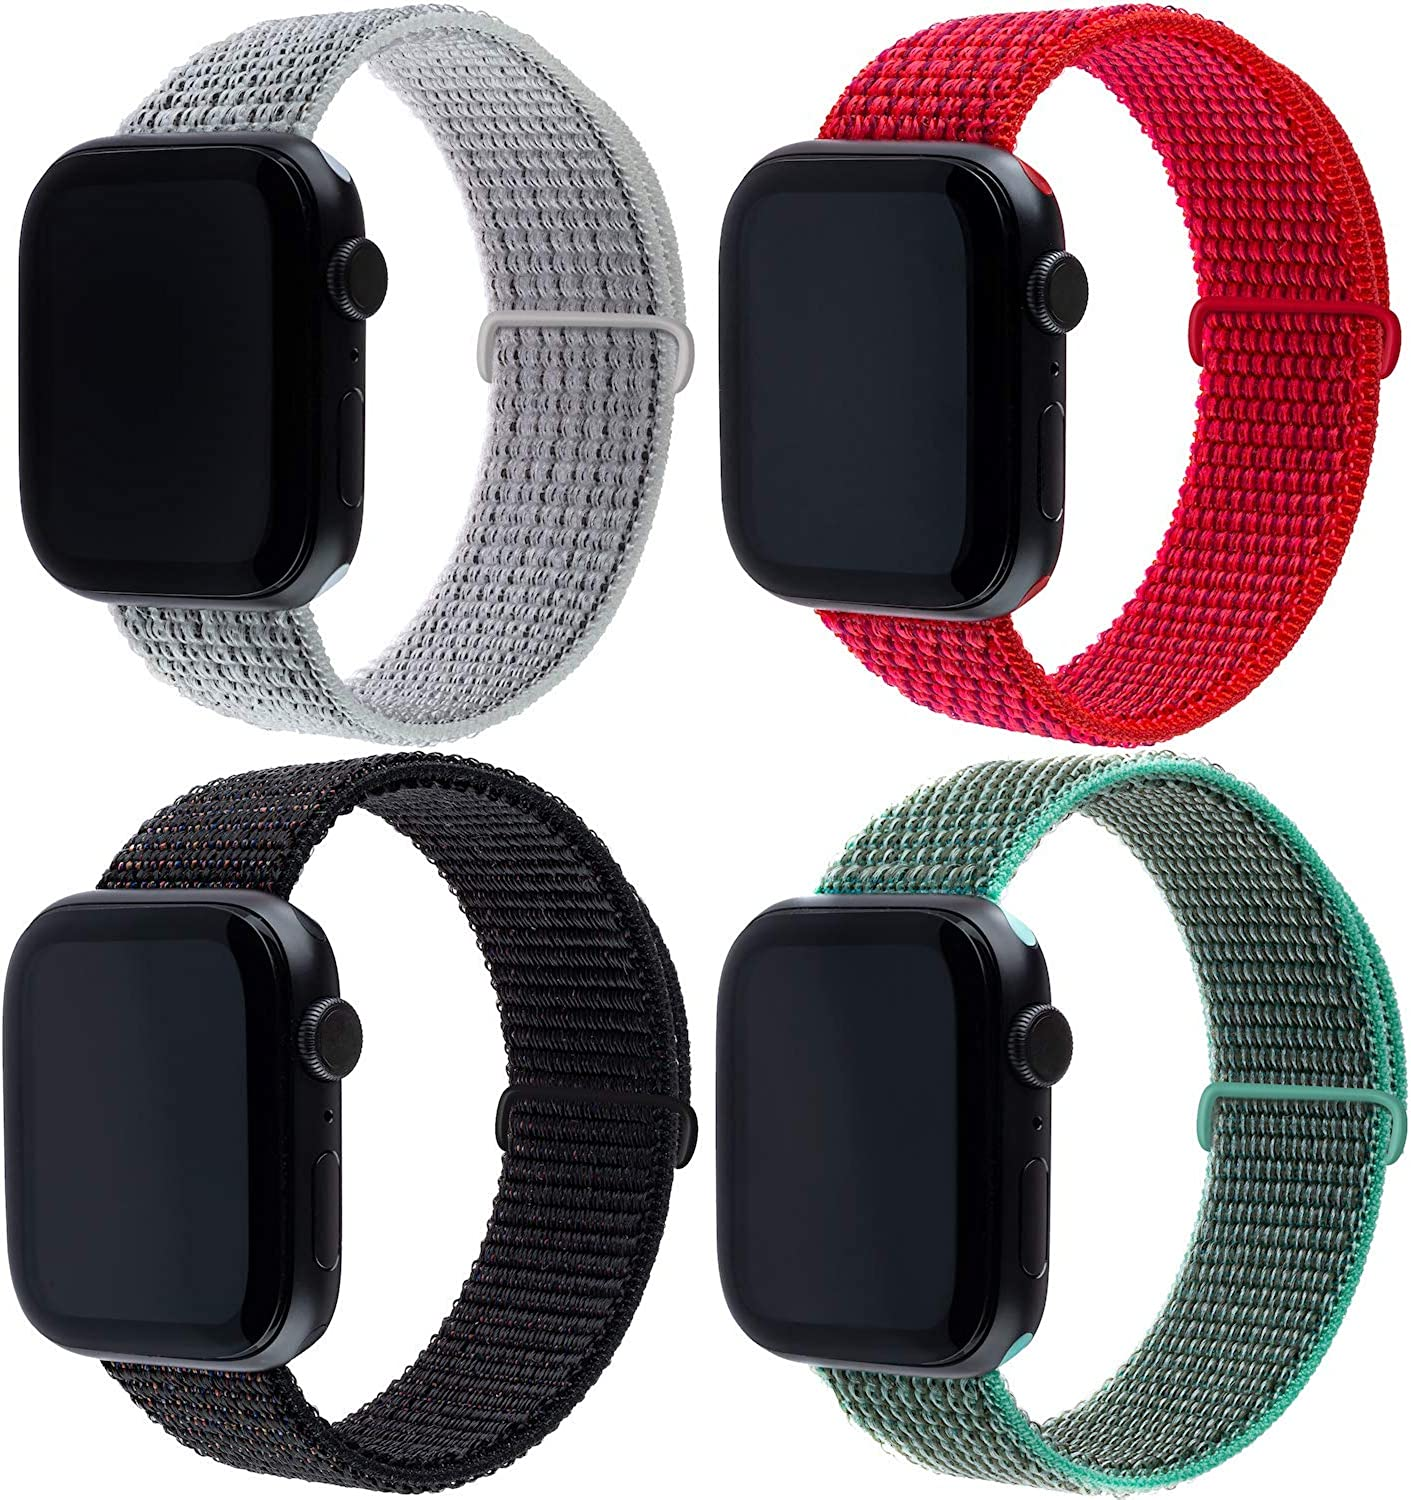 Nylon Bands Compatible with Apple Watch 42mm 44mm, Sport Band Soft Breathable Nylon Replacement for iWatch Series 6/5/4/3/2/1 (4 Pack)